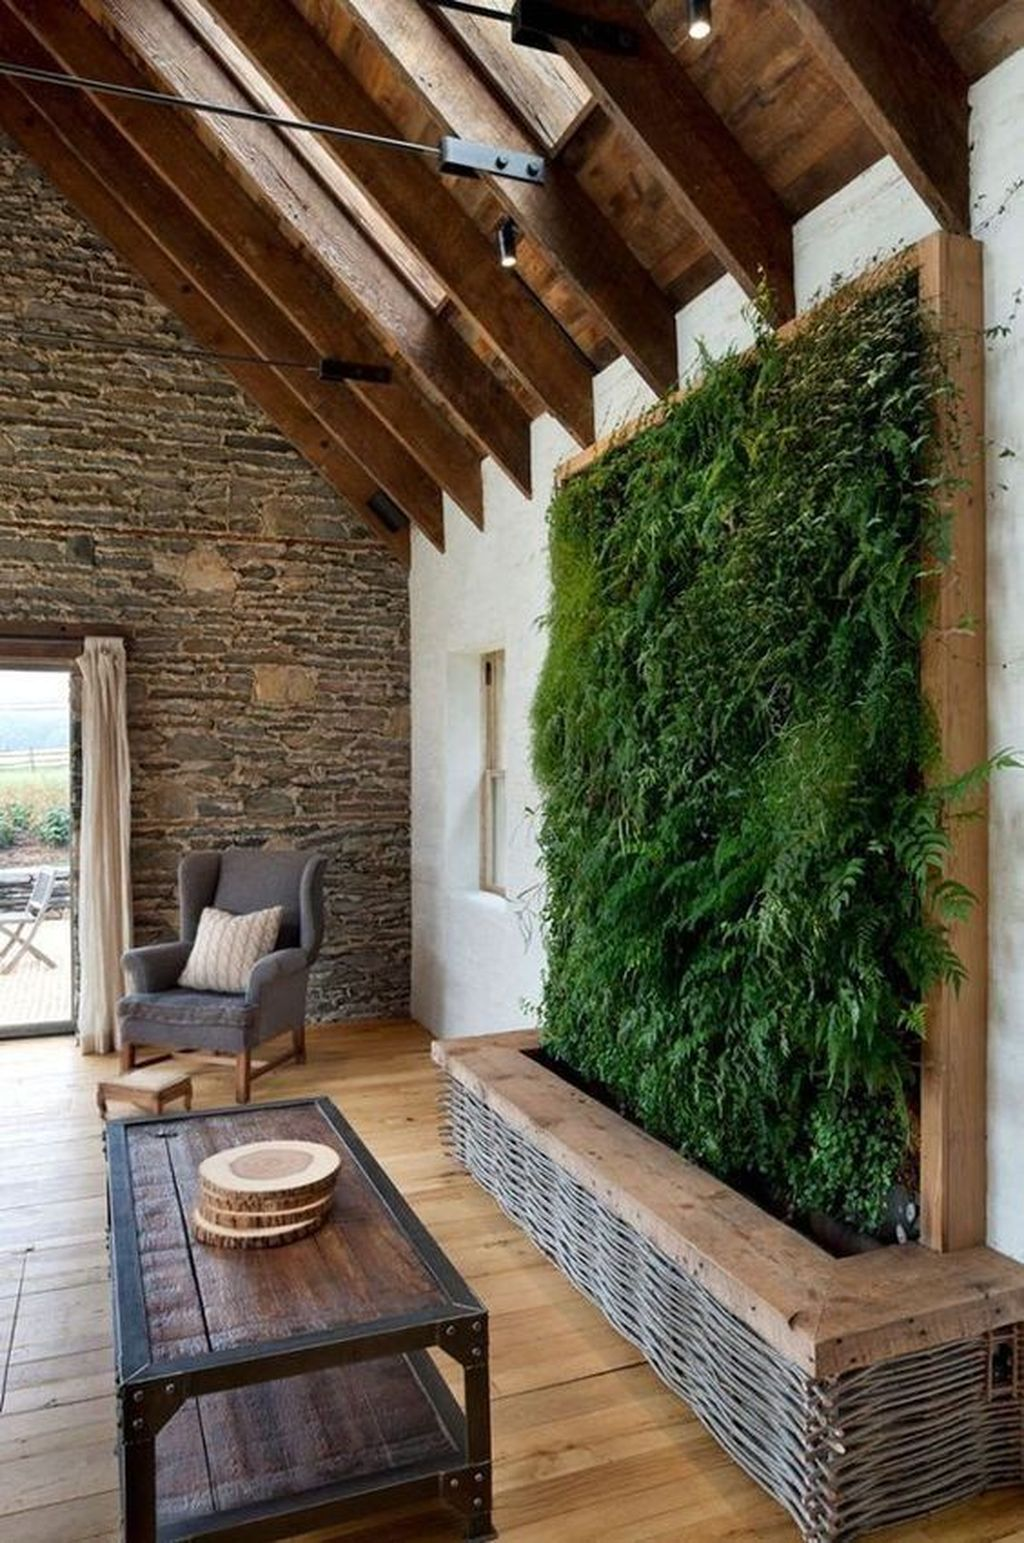 Amazing Living Wall Indoor Decoration Ideas 19